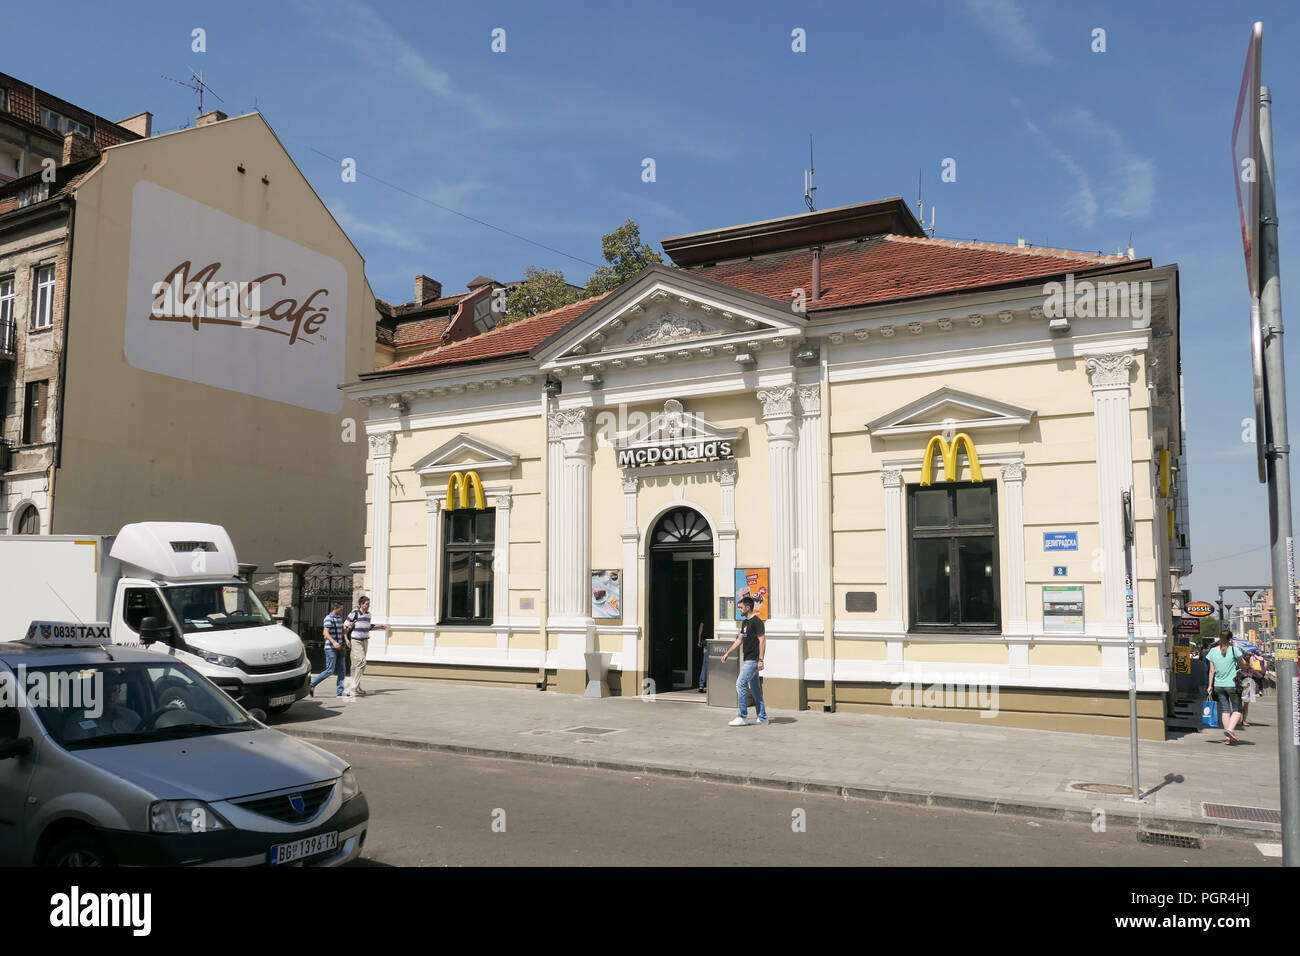 McDonalds Slavjia Square, Belgrade, Serbia - the first McDonald's to open in a communist country in 1988 when part of Yugoslavia - Stock Image